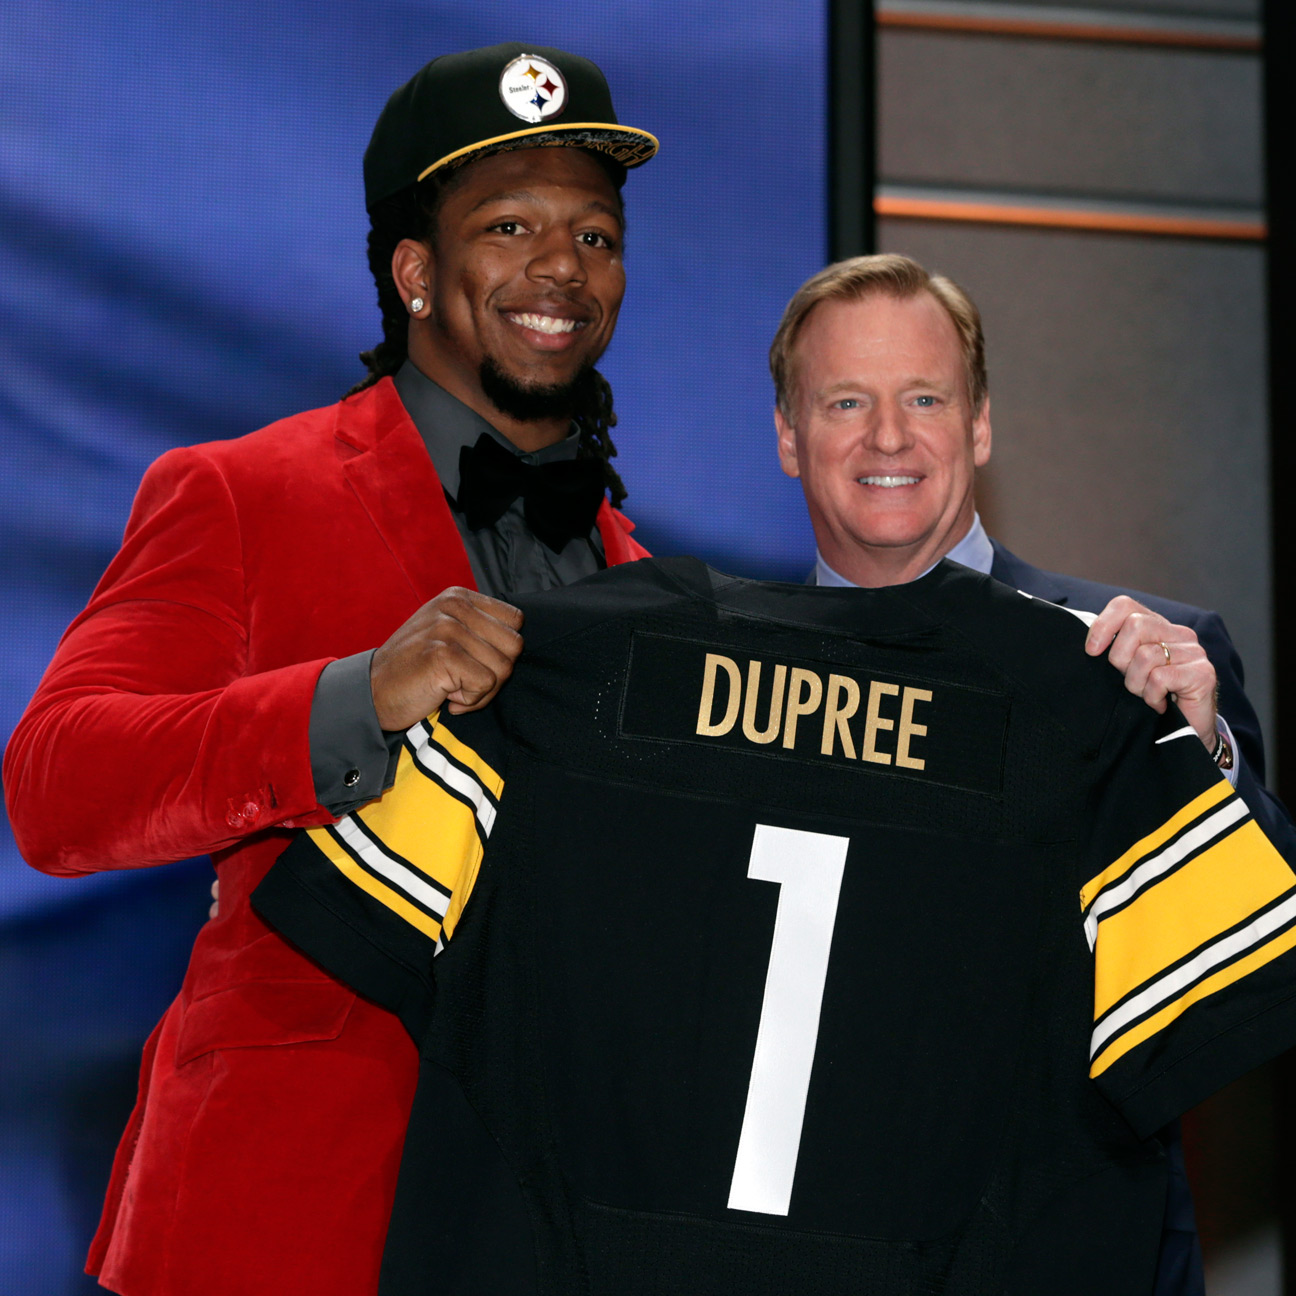 AFC North writers vote Steelers had division's best draft